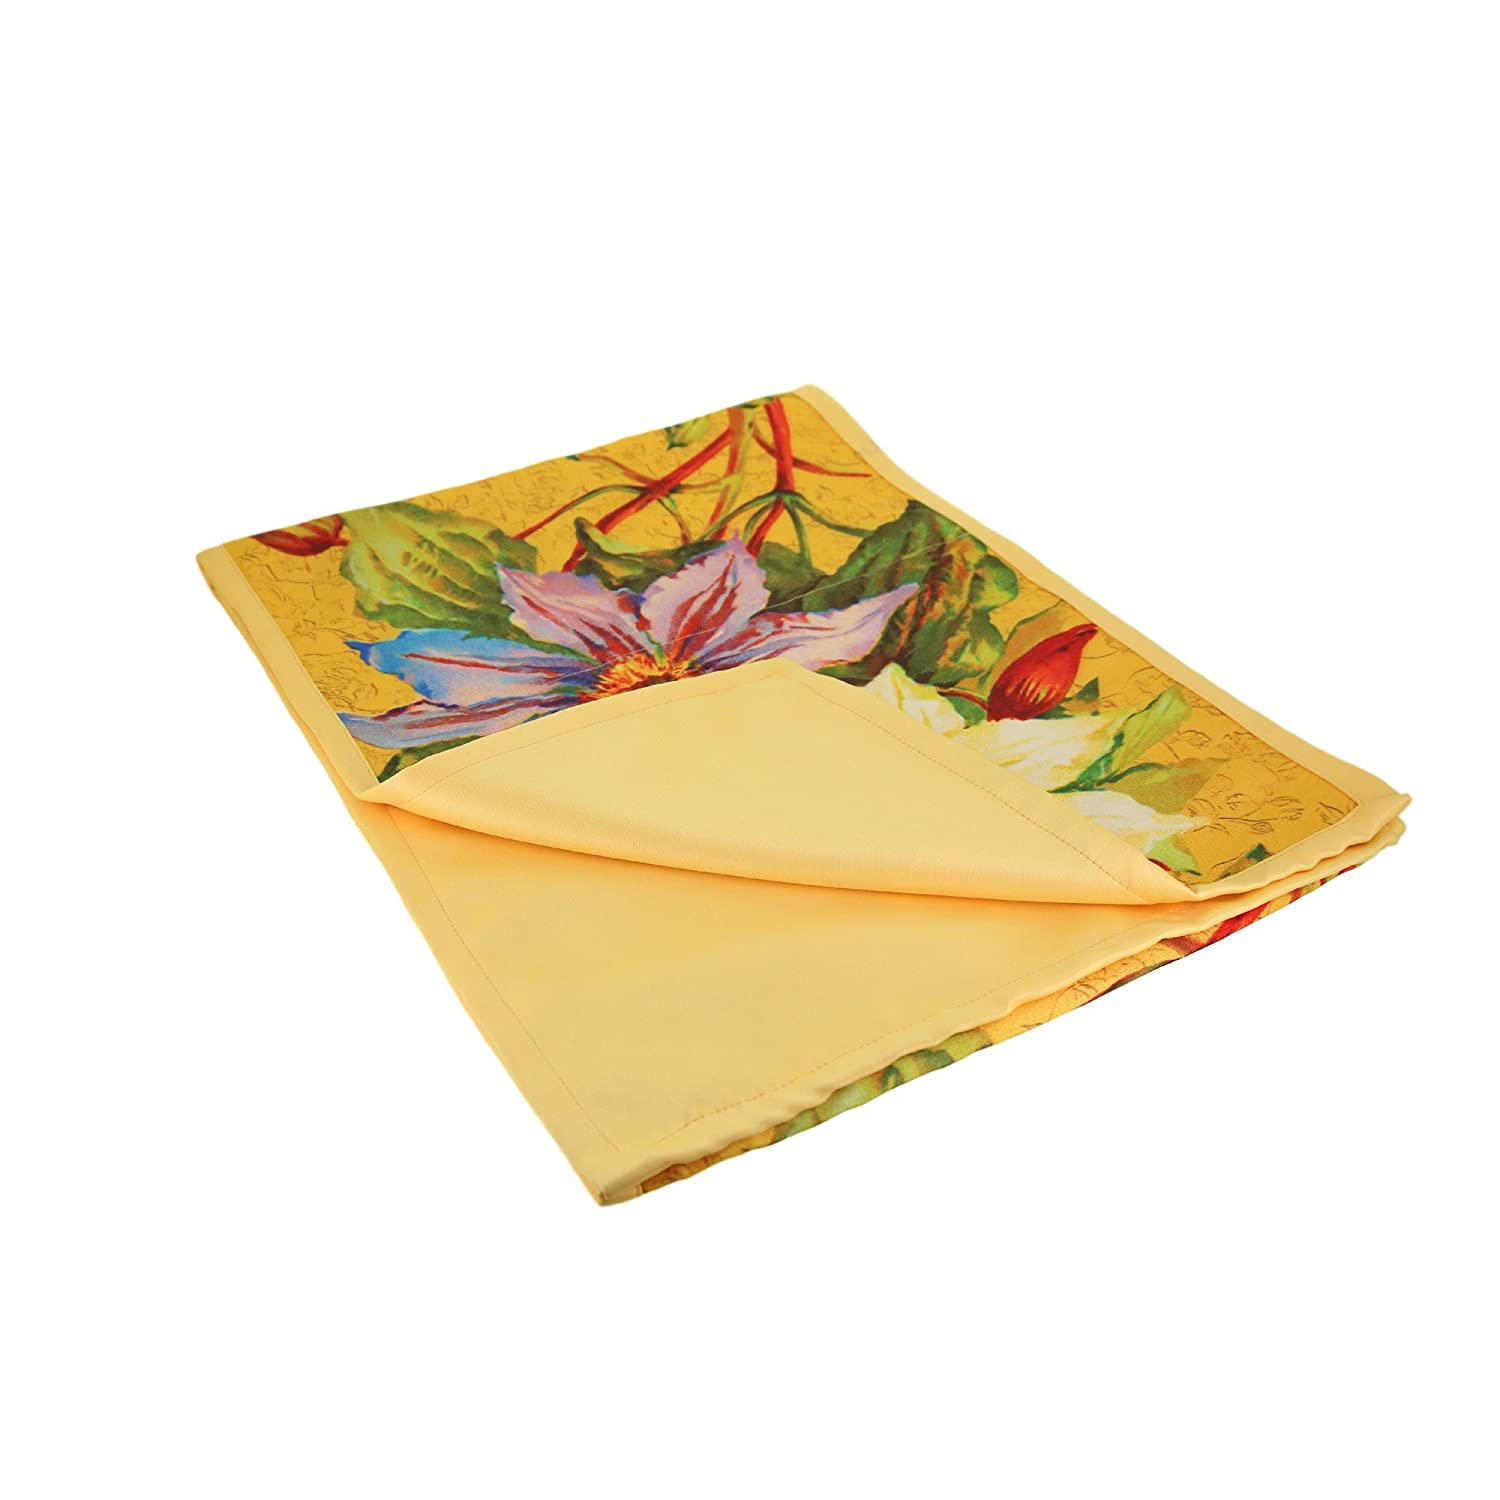 13 inches by 72 inches Great for The Holidays ShalinCraft MN-RND01-37 ShalinIndia Digitally Printed Yellow Floral Autumn Leaves Kitchen Dining Table Runner Faux Silk Polyester Reversible